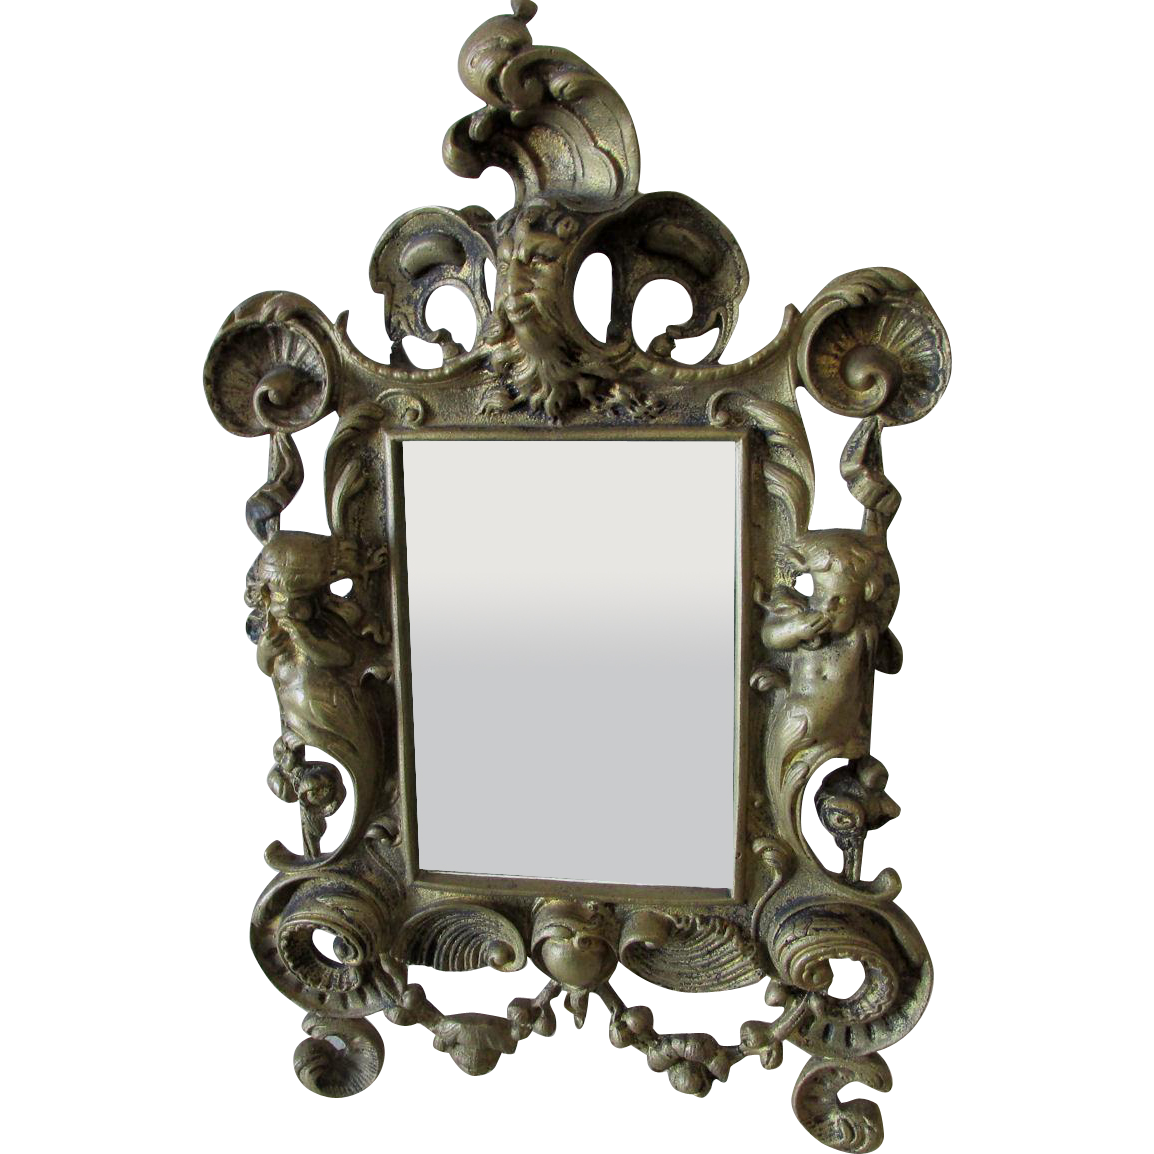 Antique Mythological Mirror Picture Frame With Mermaid